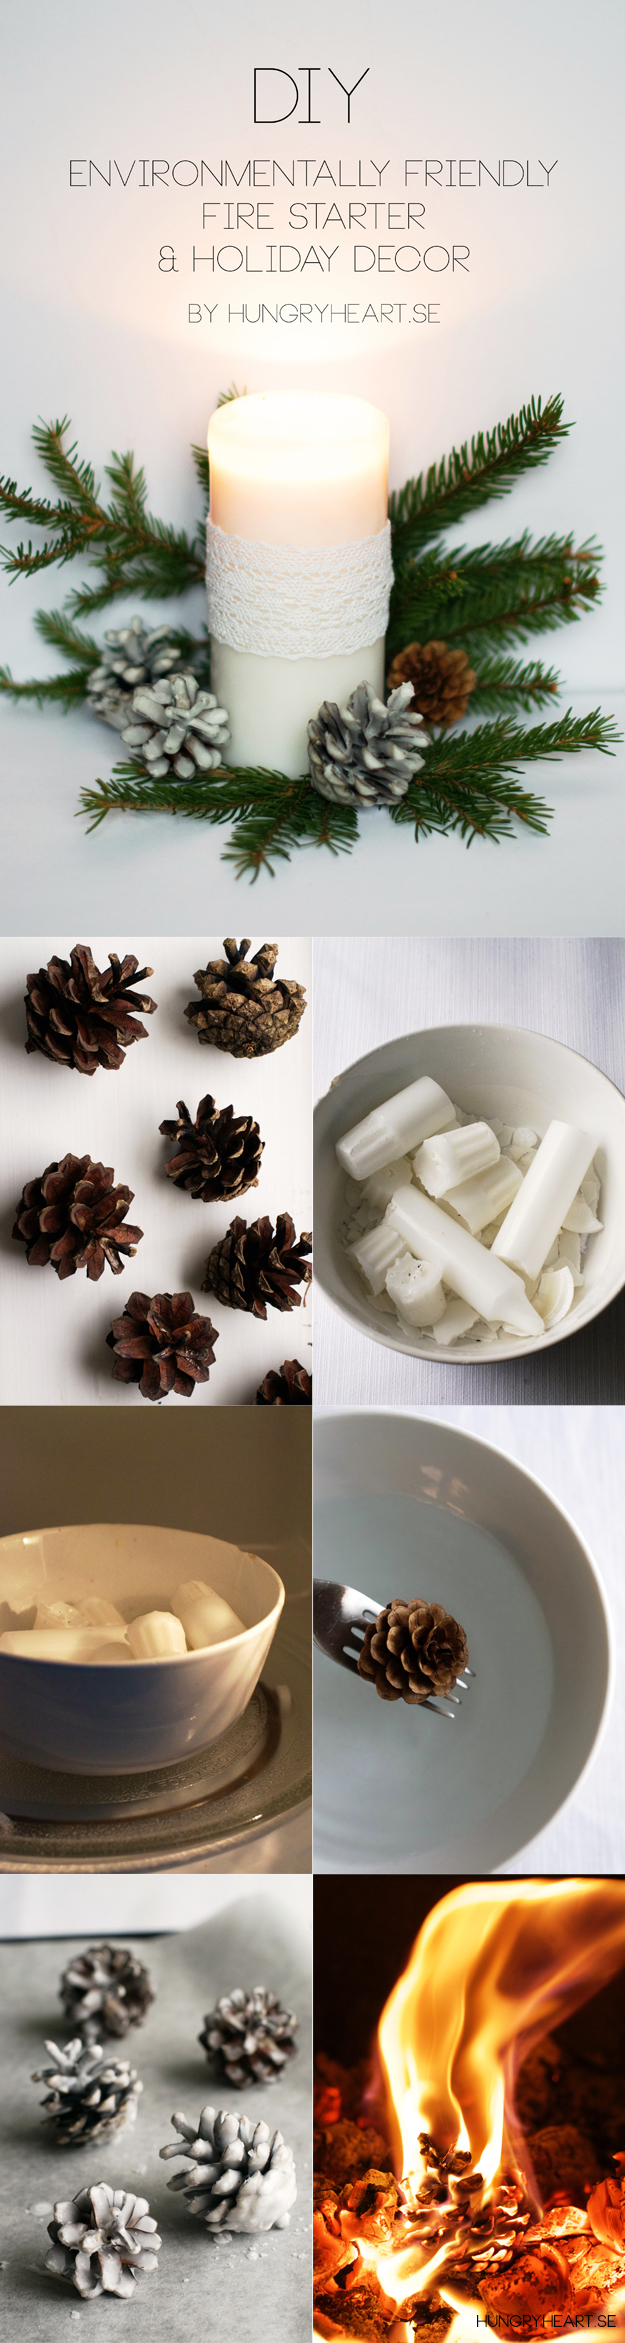 DIY Eco-Friendly Fire Starter & Holiday Decor | Hungry Heart